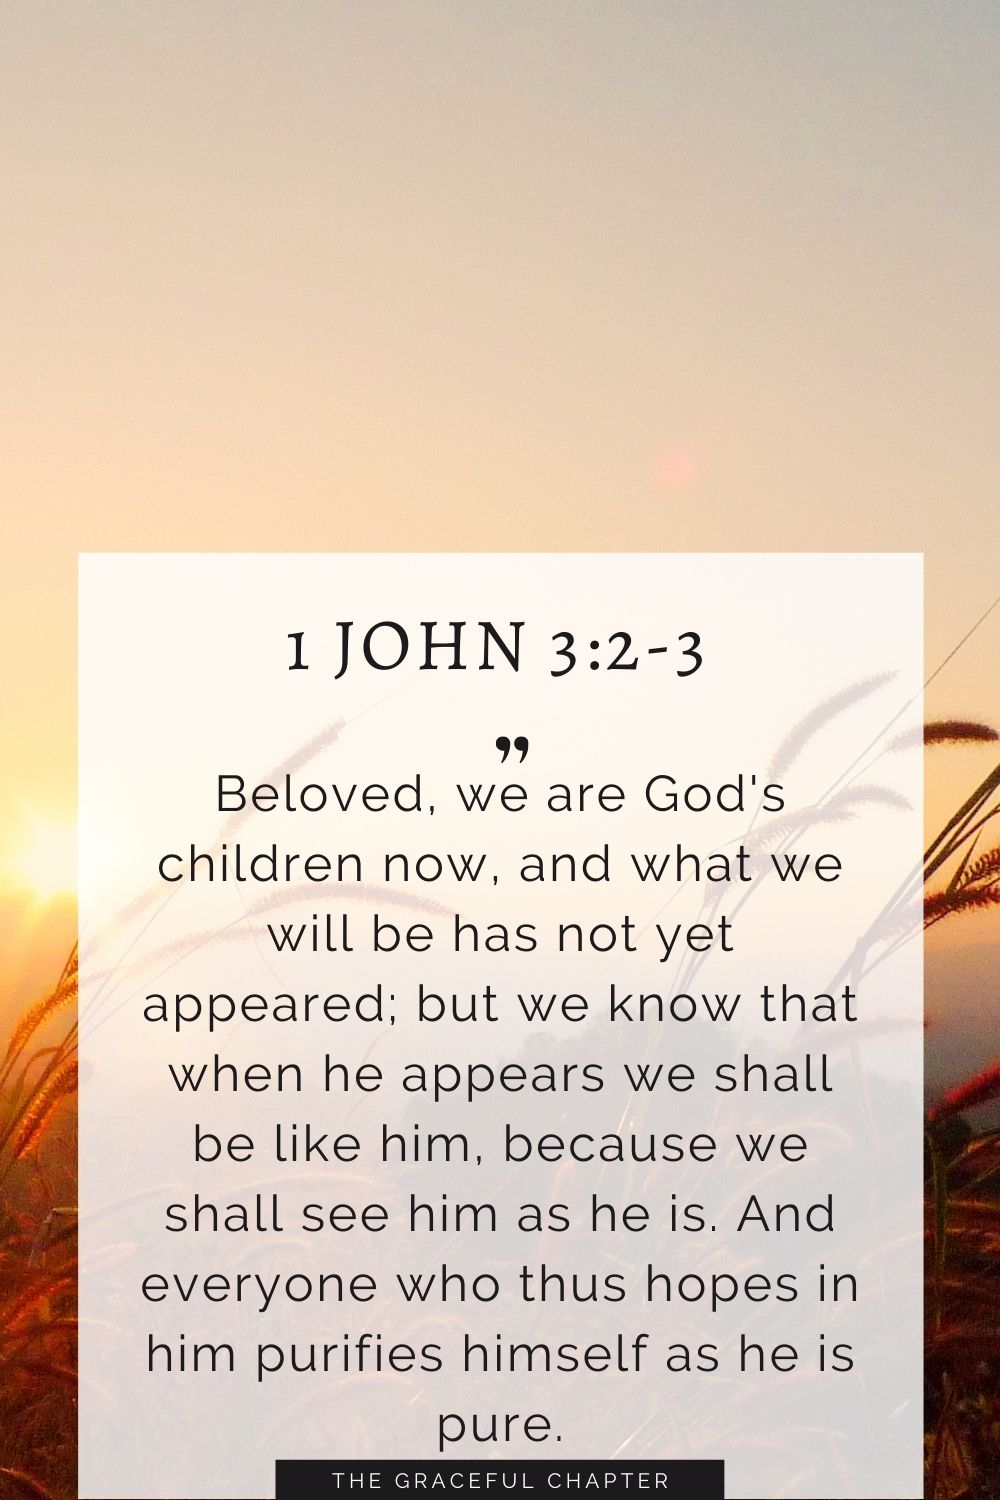 Beloved, we are God's children now, and what we will be has not yet appeared; but we know that when he appears we shall be like him, because we shall see him as he is. And everyone who thus hopes in him purifies himself as he is pure. 1 John 3:2-3